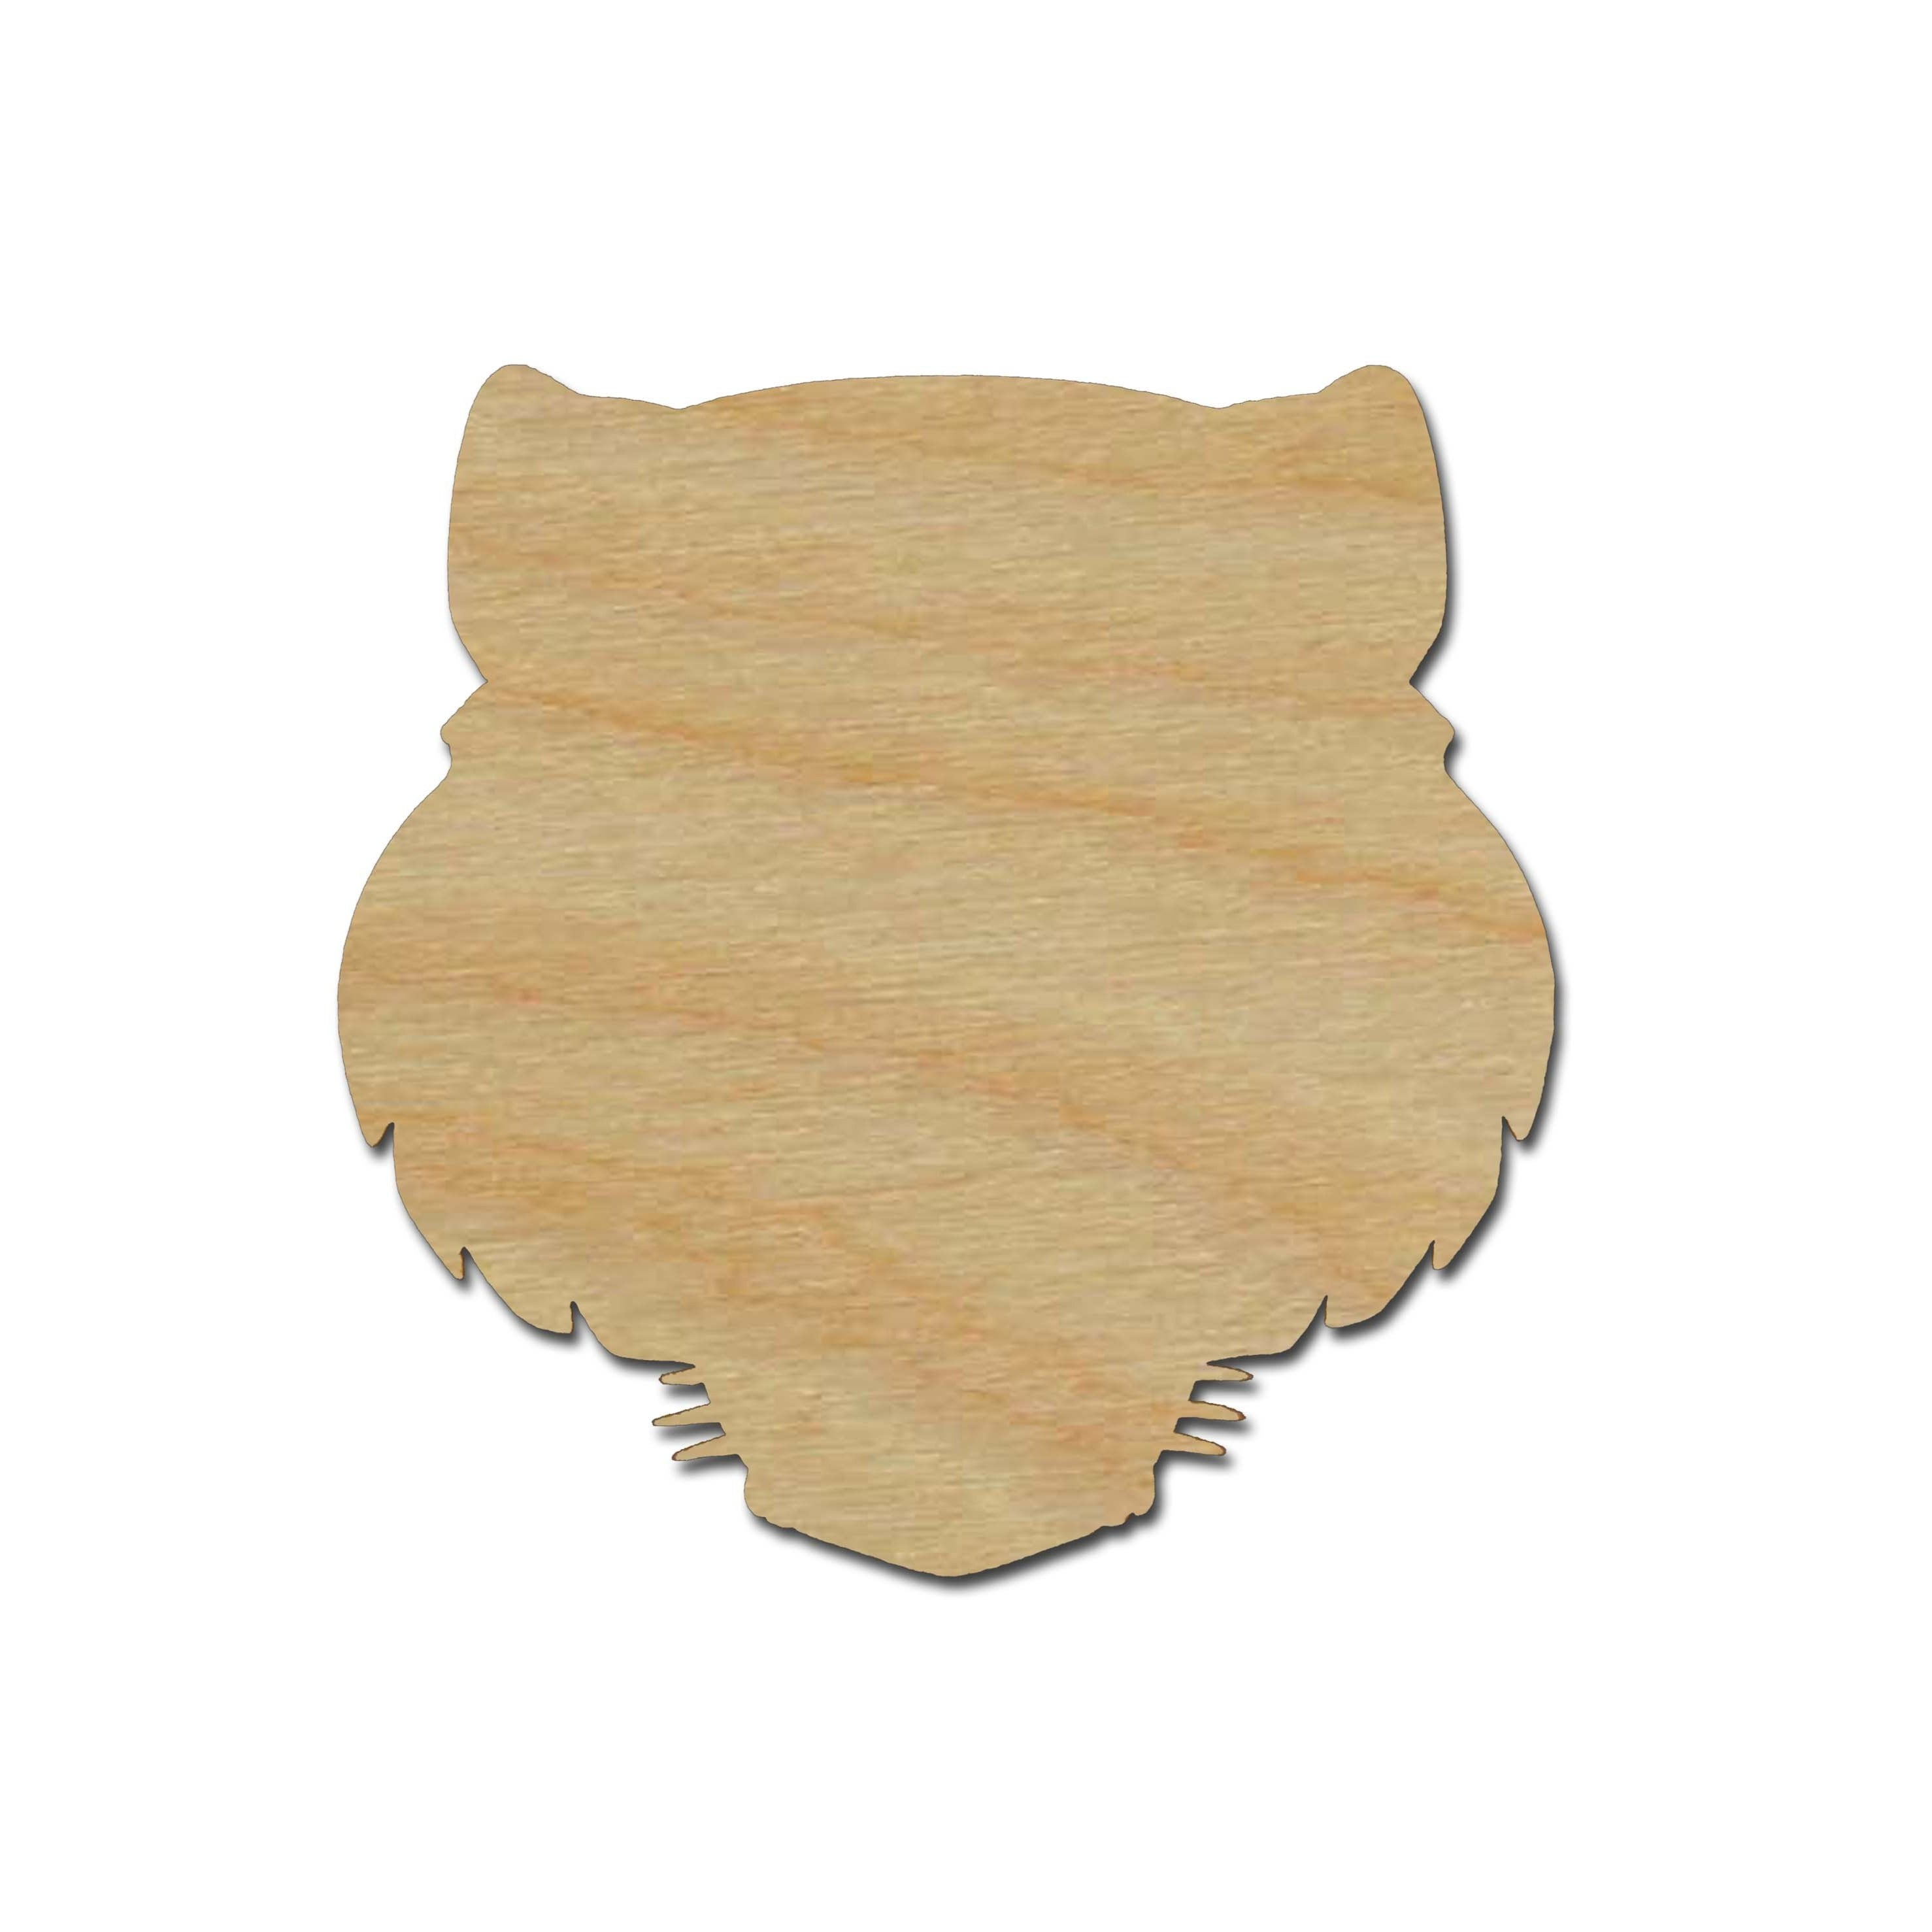 Tiger Head Shape Unfinished Wood Cut out